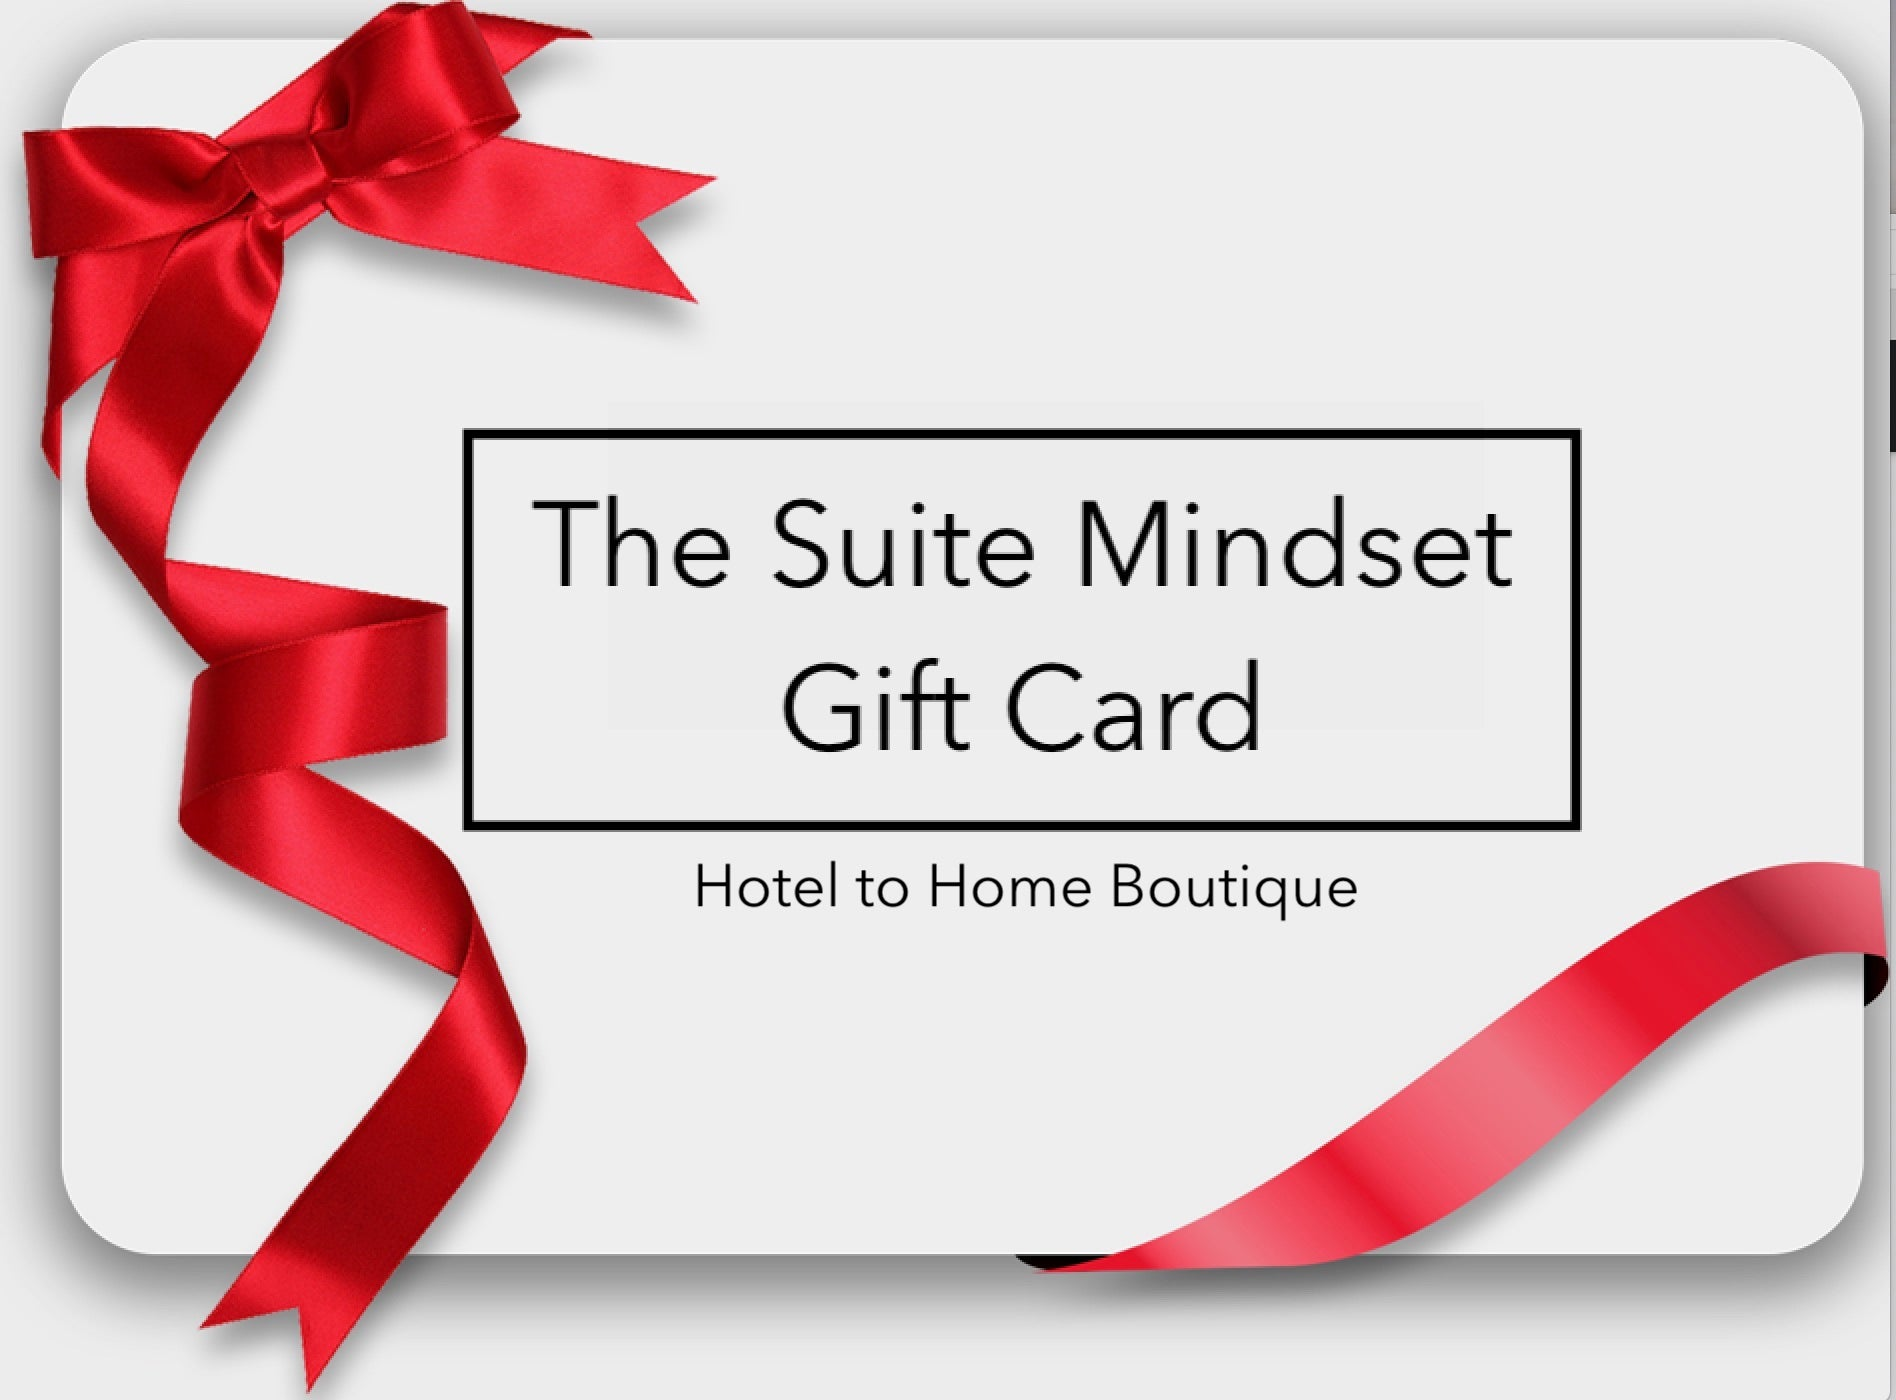 The Suite Mindset gift card